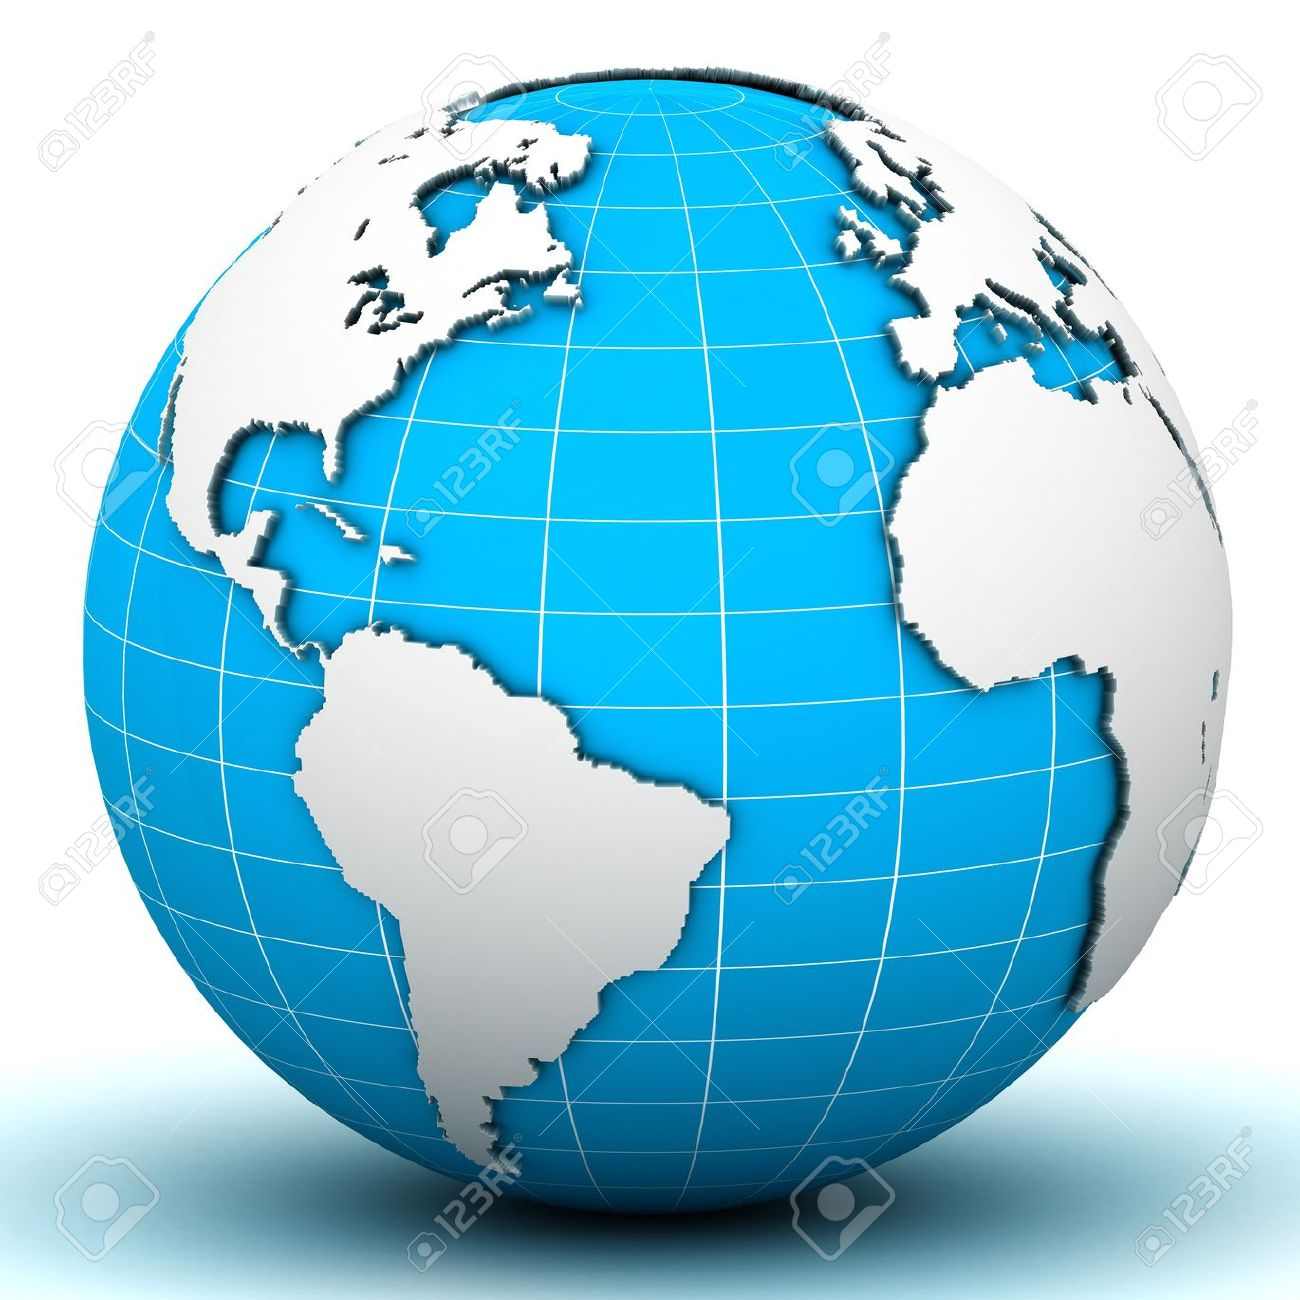 World globe map stock photo picture and royalty free image image world globe map stock photo 14821617 sciox Image collections